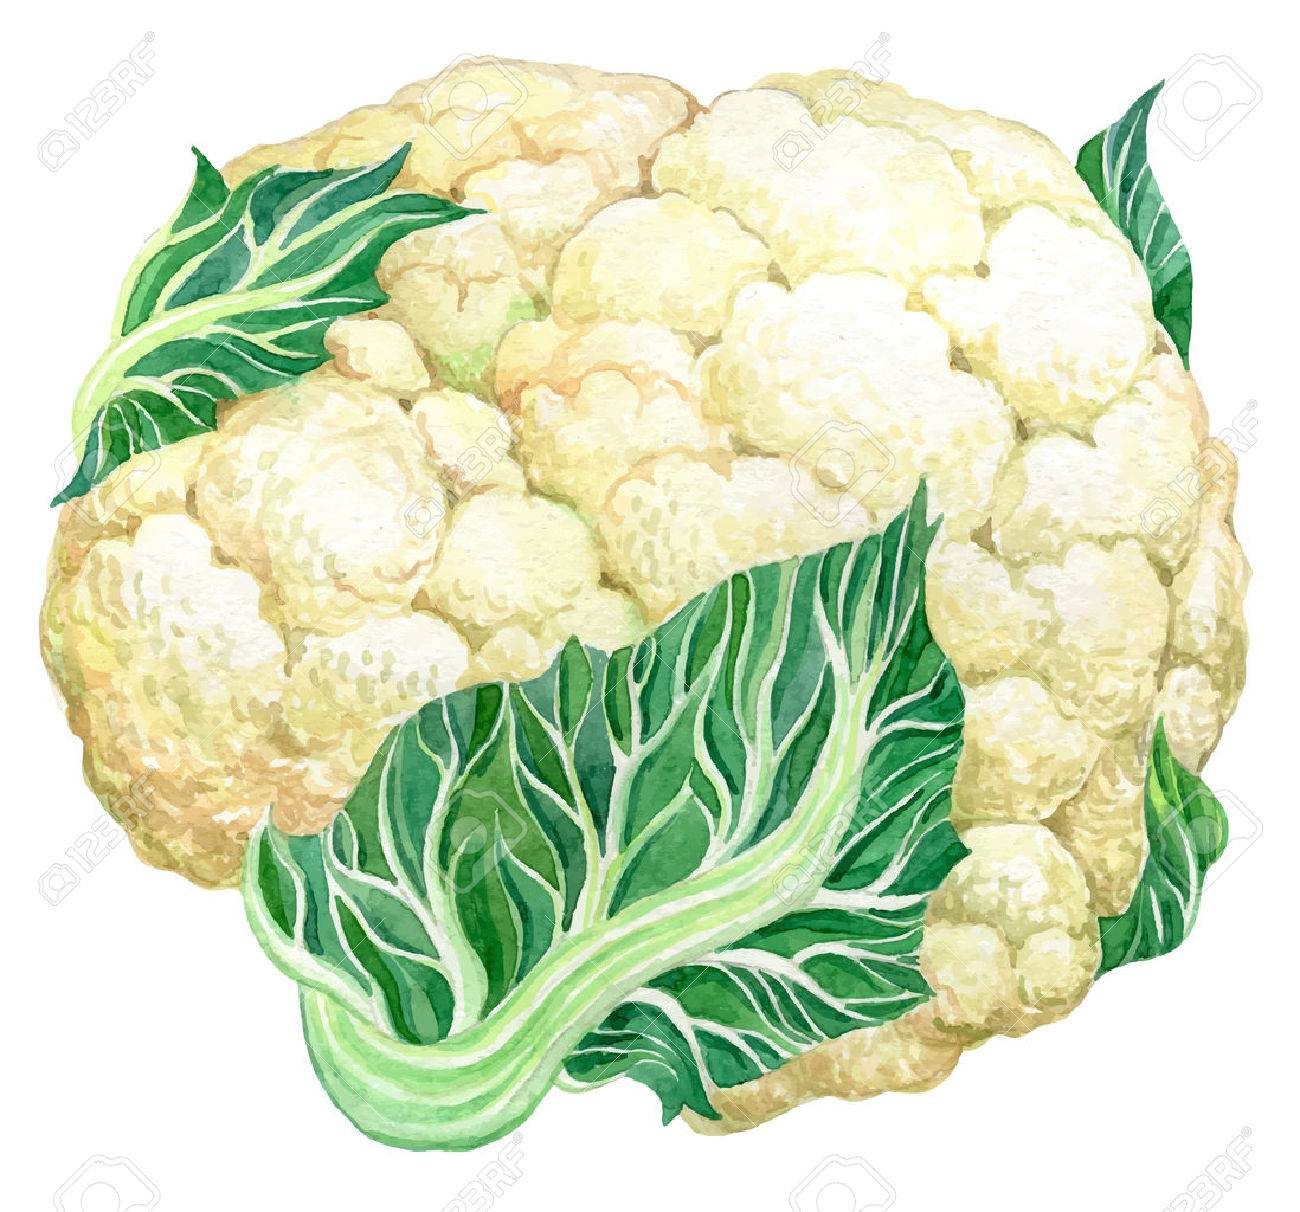 Cauliflower - Hand drawn watercolor painting vector illustration on white background - 51040286